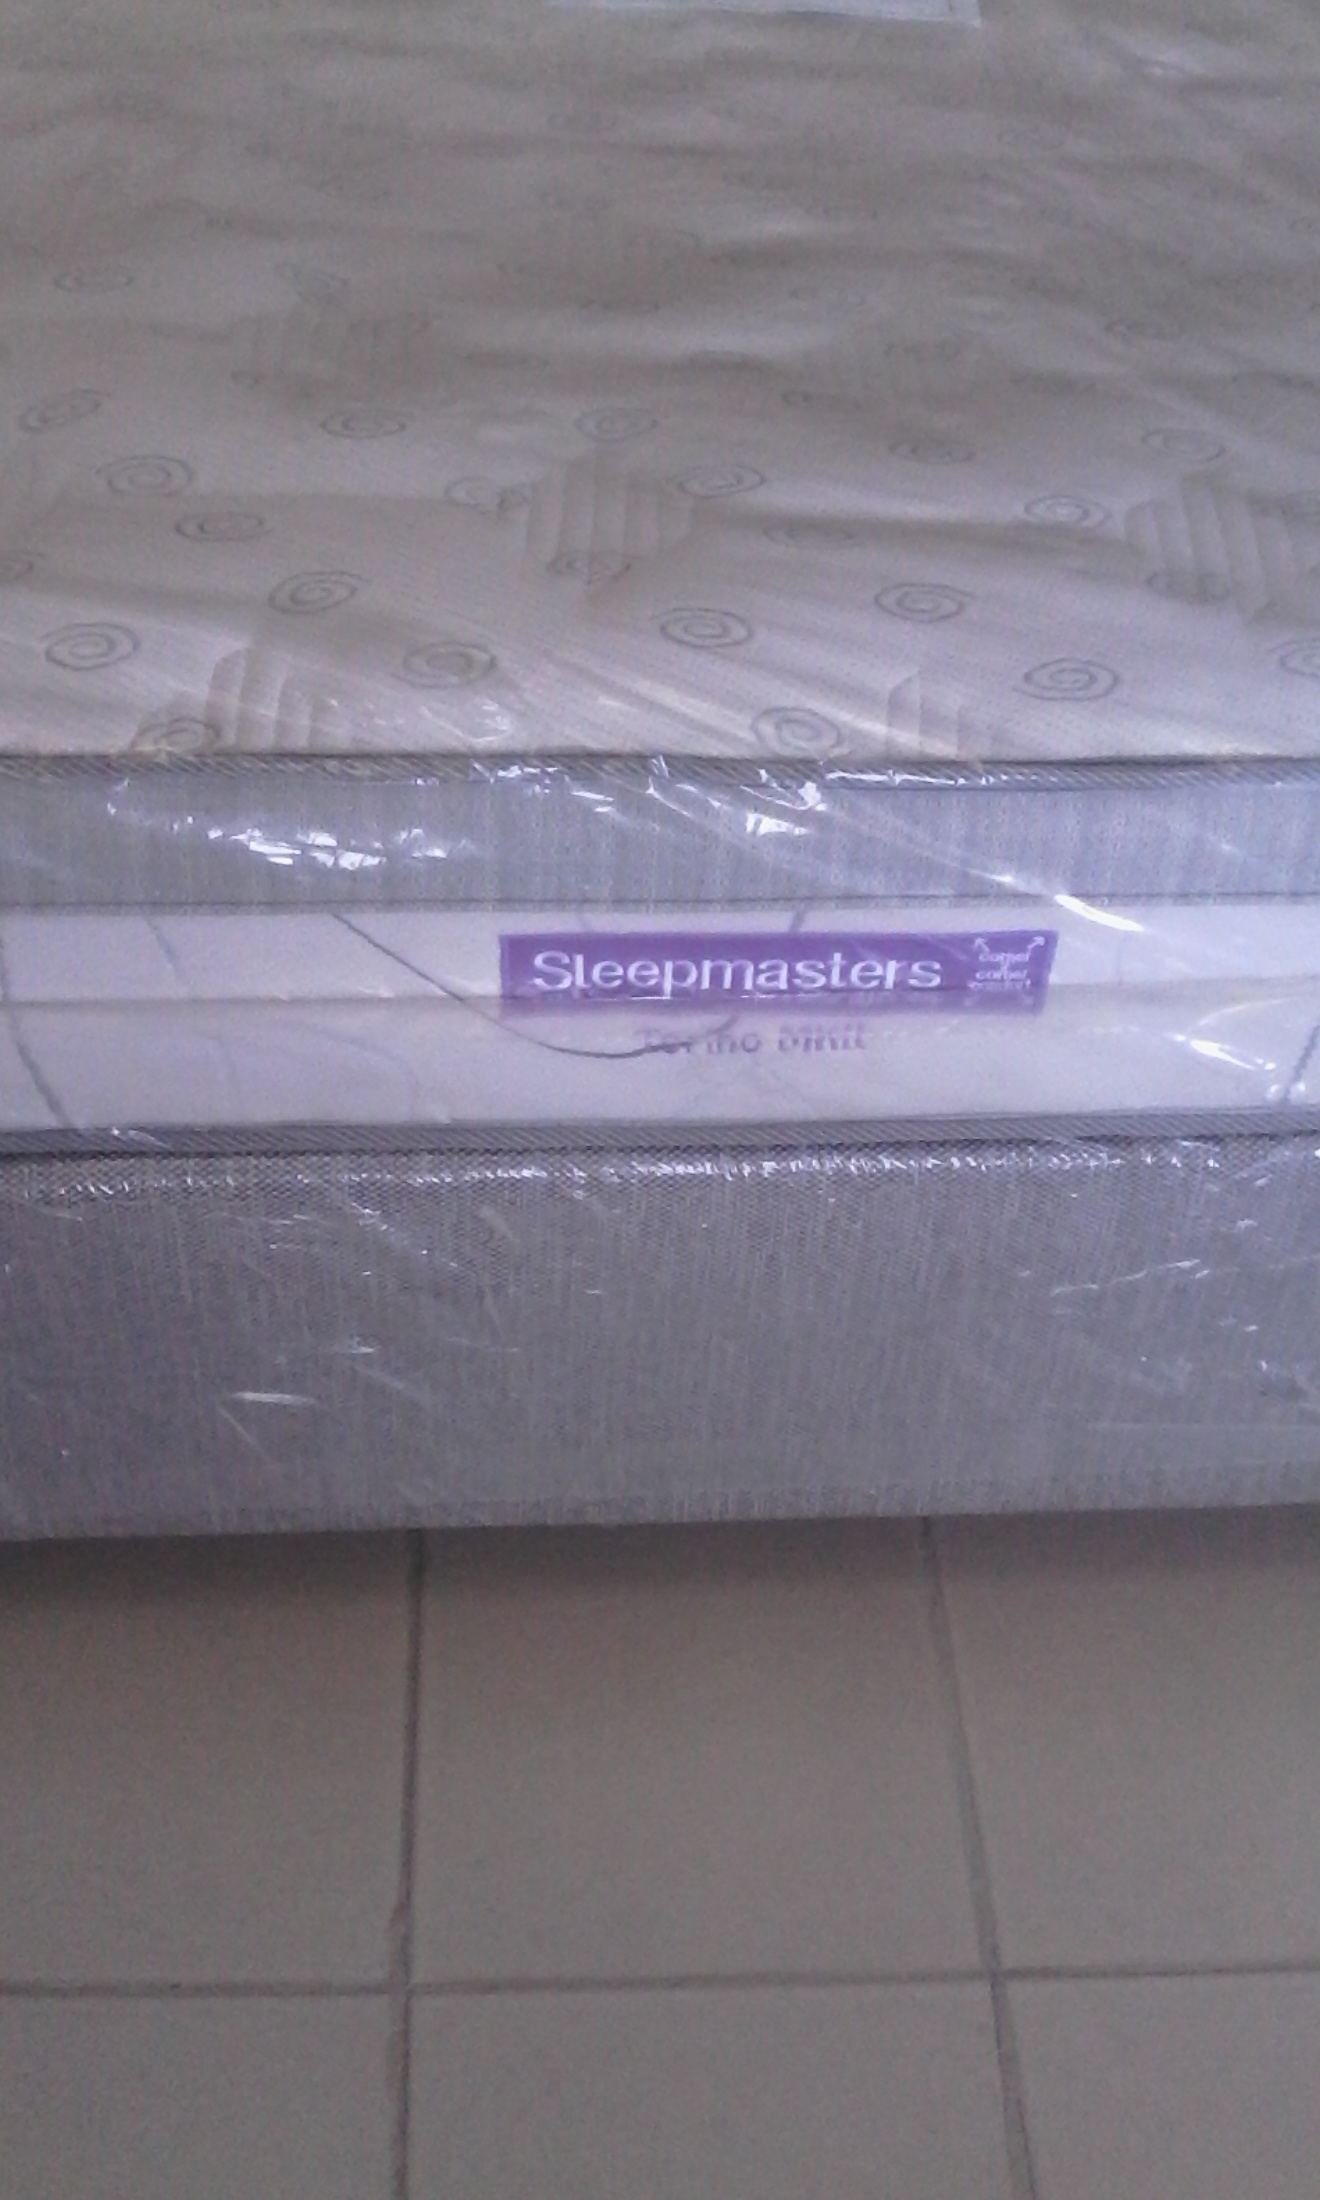 New 3/4 Size Restonic/Edblo/Sleepmasters/Comfy Max/Sealy Beds from R2299